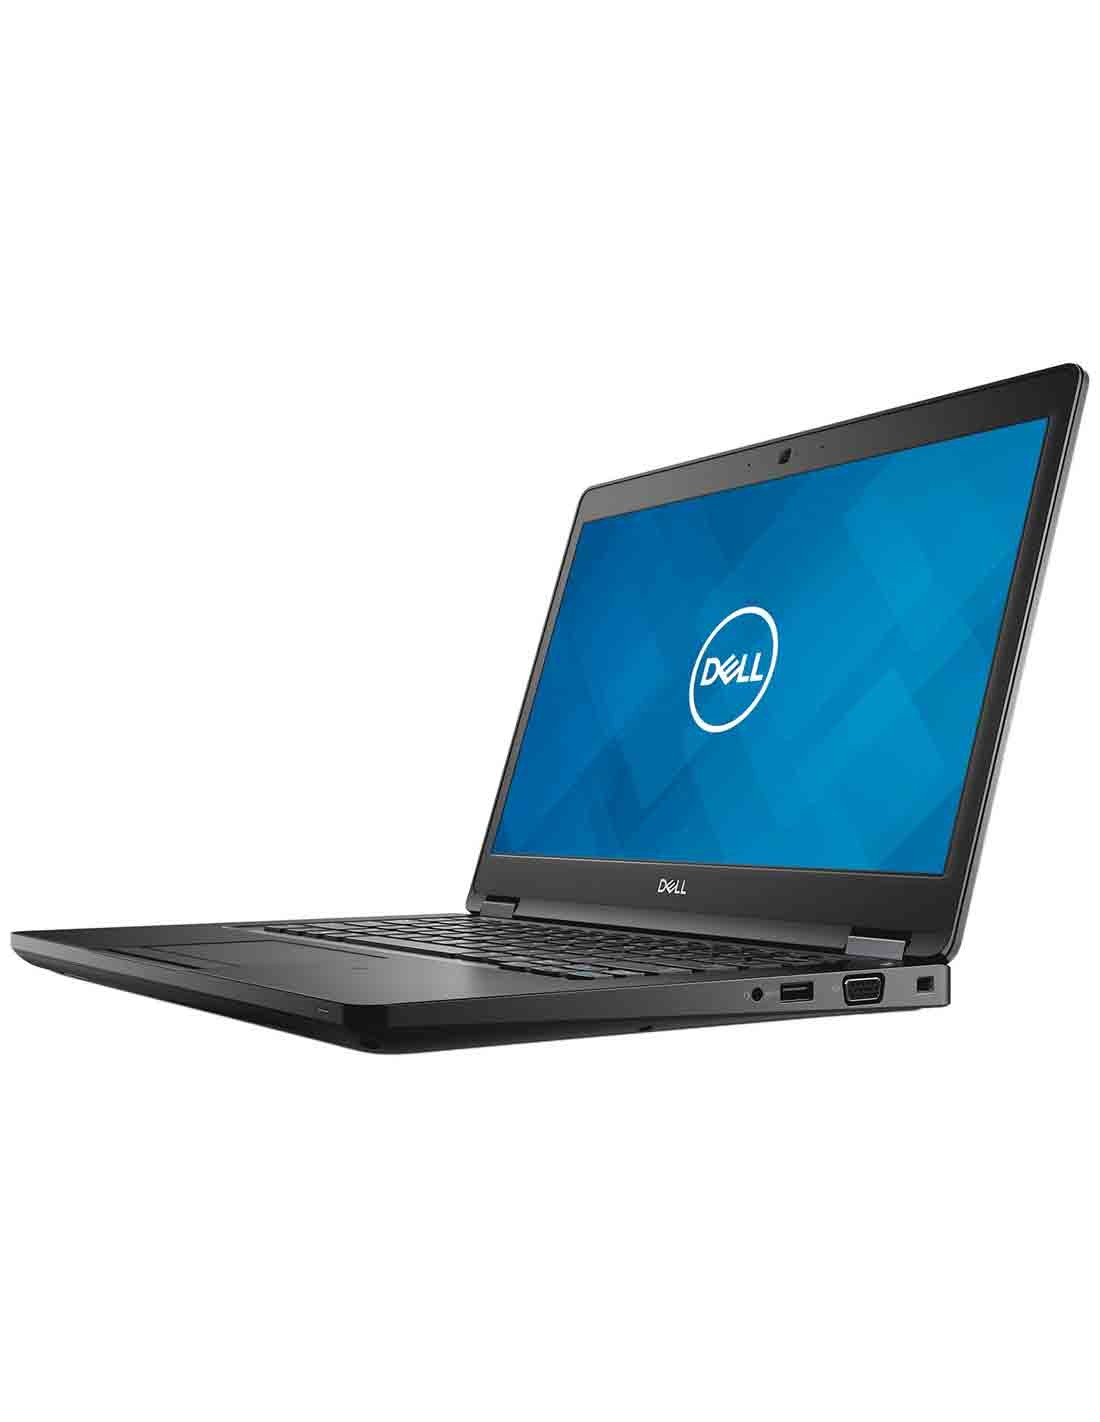 Dell Latitude 5490 Laptop at the cheapest price and fast free delivery in Dubai, UAE